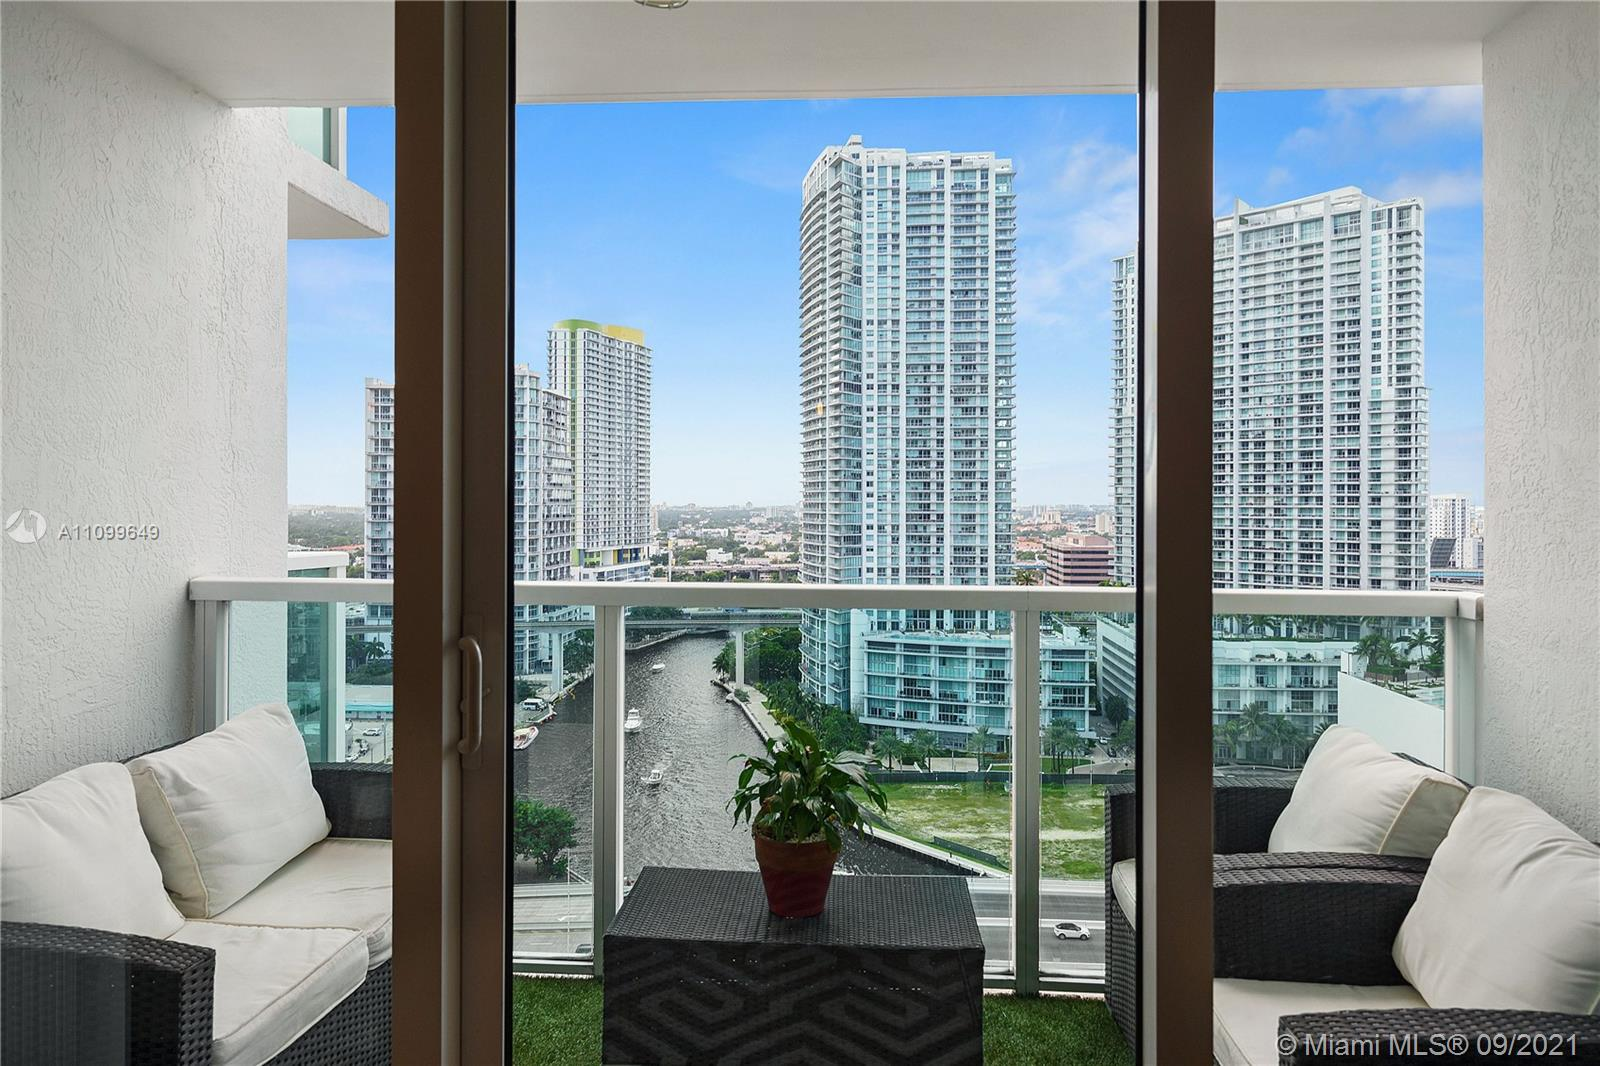 Brickell On The River is right where you want to be!! In the heart of the vibrant city of Miami, you'll feel the energy and understand why Miami is the city of choice!  This bright, spacious 1/1 has an open floor plan, lovely flooring, a large open kitchen and gorgeous views of the magic city and the Miami River.  Brickell on the River has beautiful amenities that include 2 resort style pool and patio areas, State-of-the-art gym and much more.  Washer and Dryer in the unit plus one parking space.